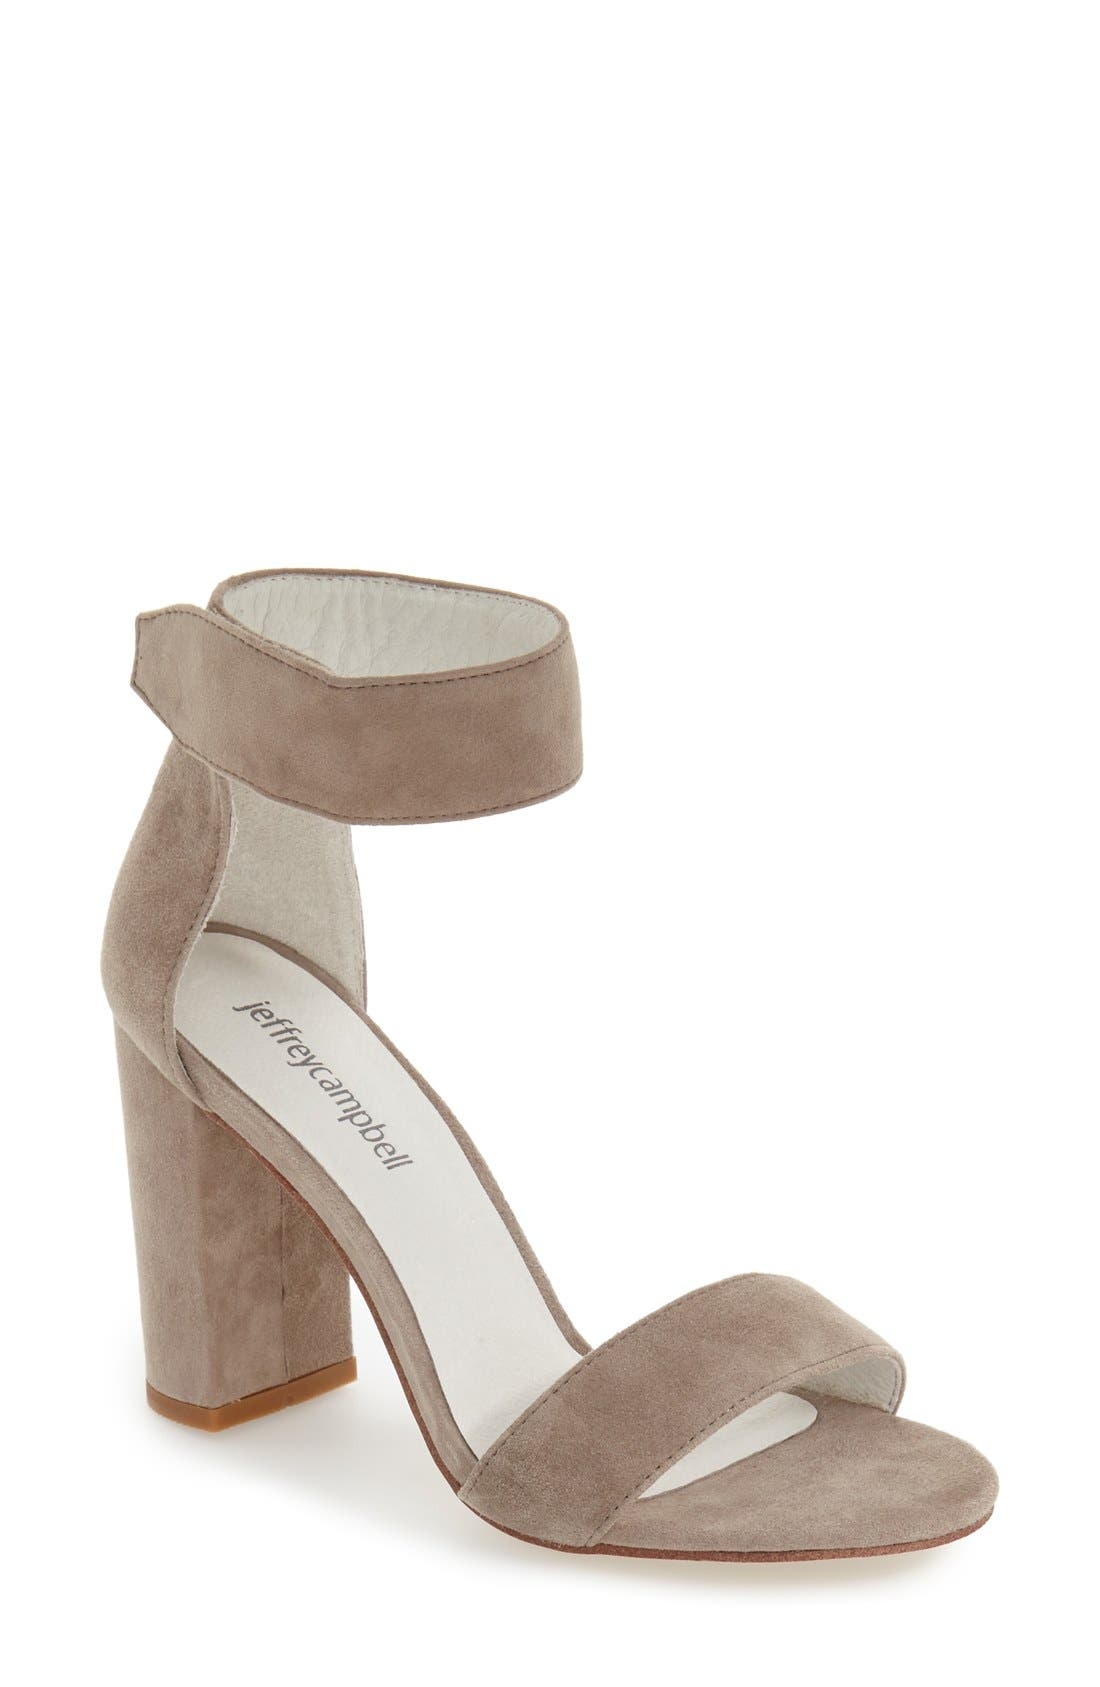 'Lindsay' Ankle Strap Sandal,                             Main thumbnail 1, color,                             Taupe Suede